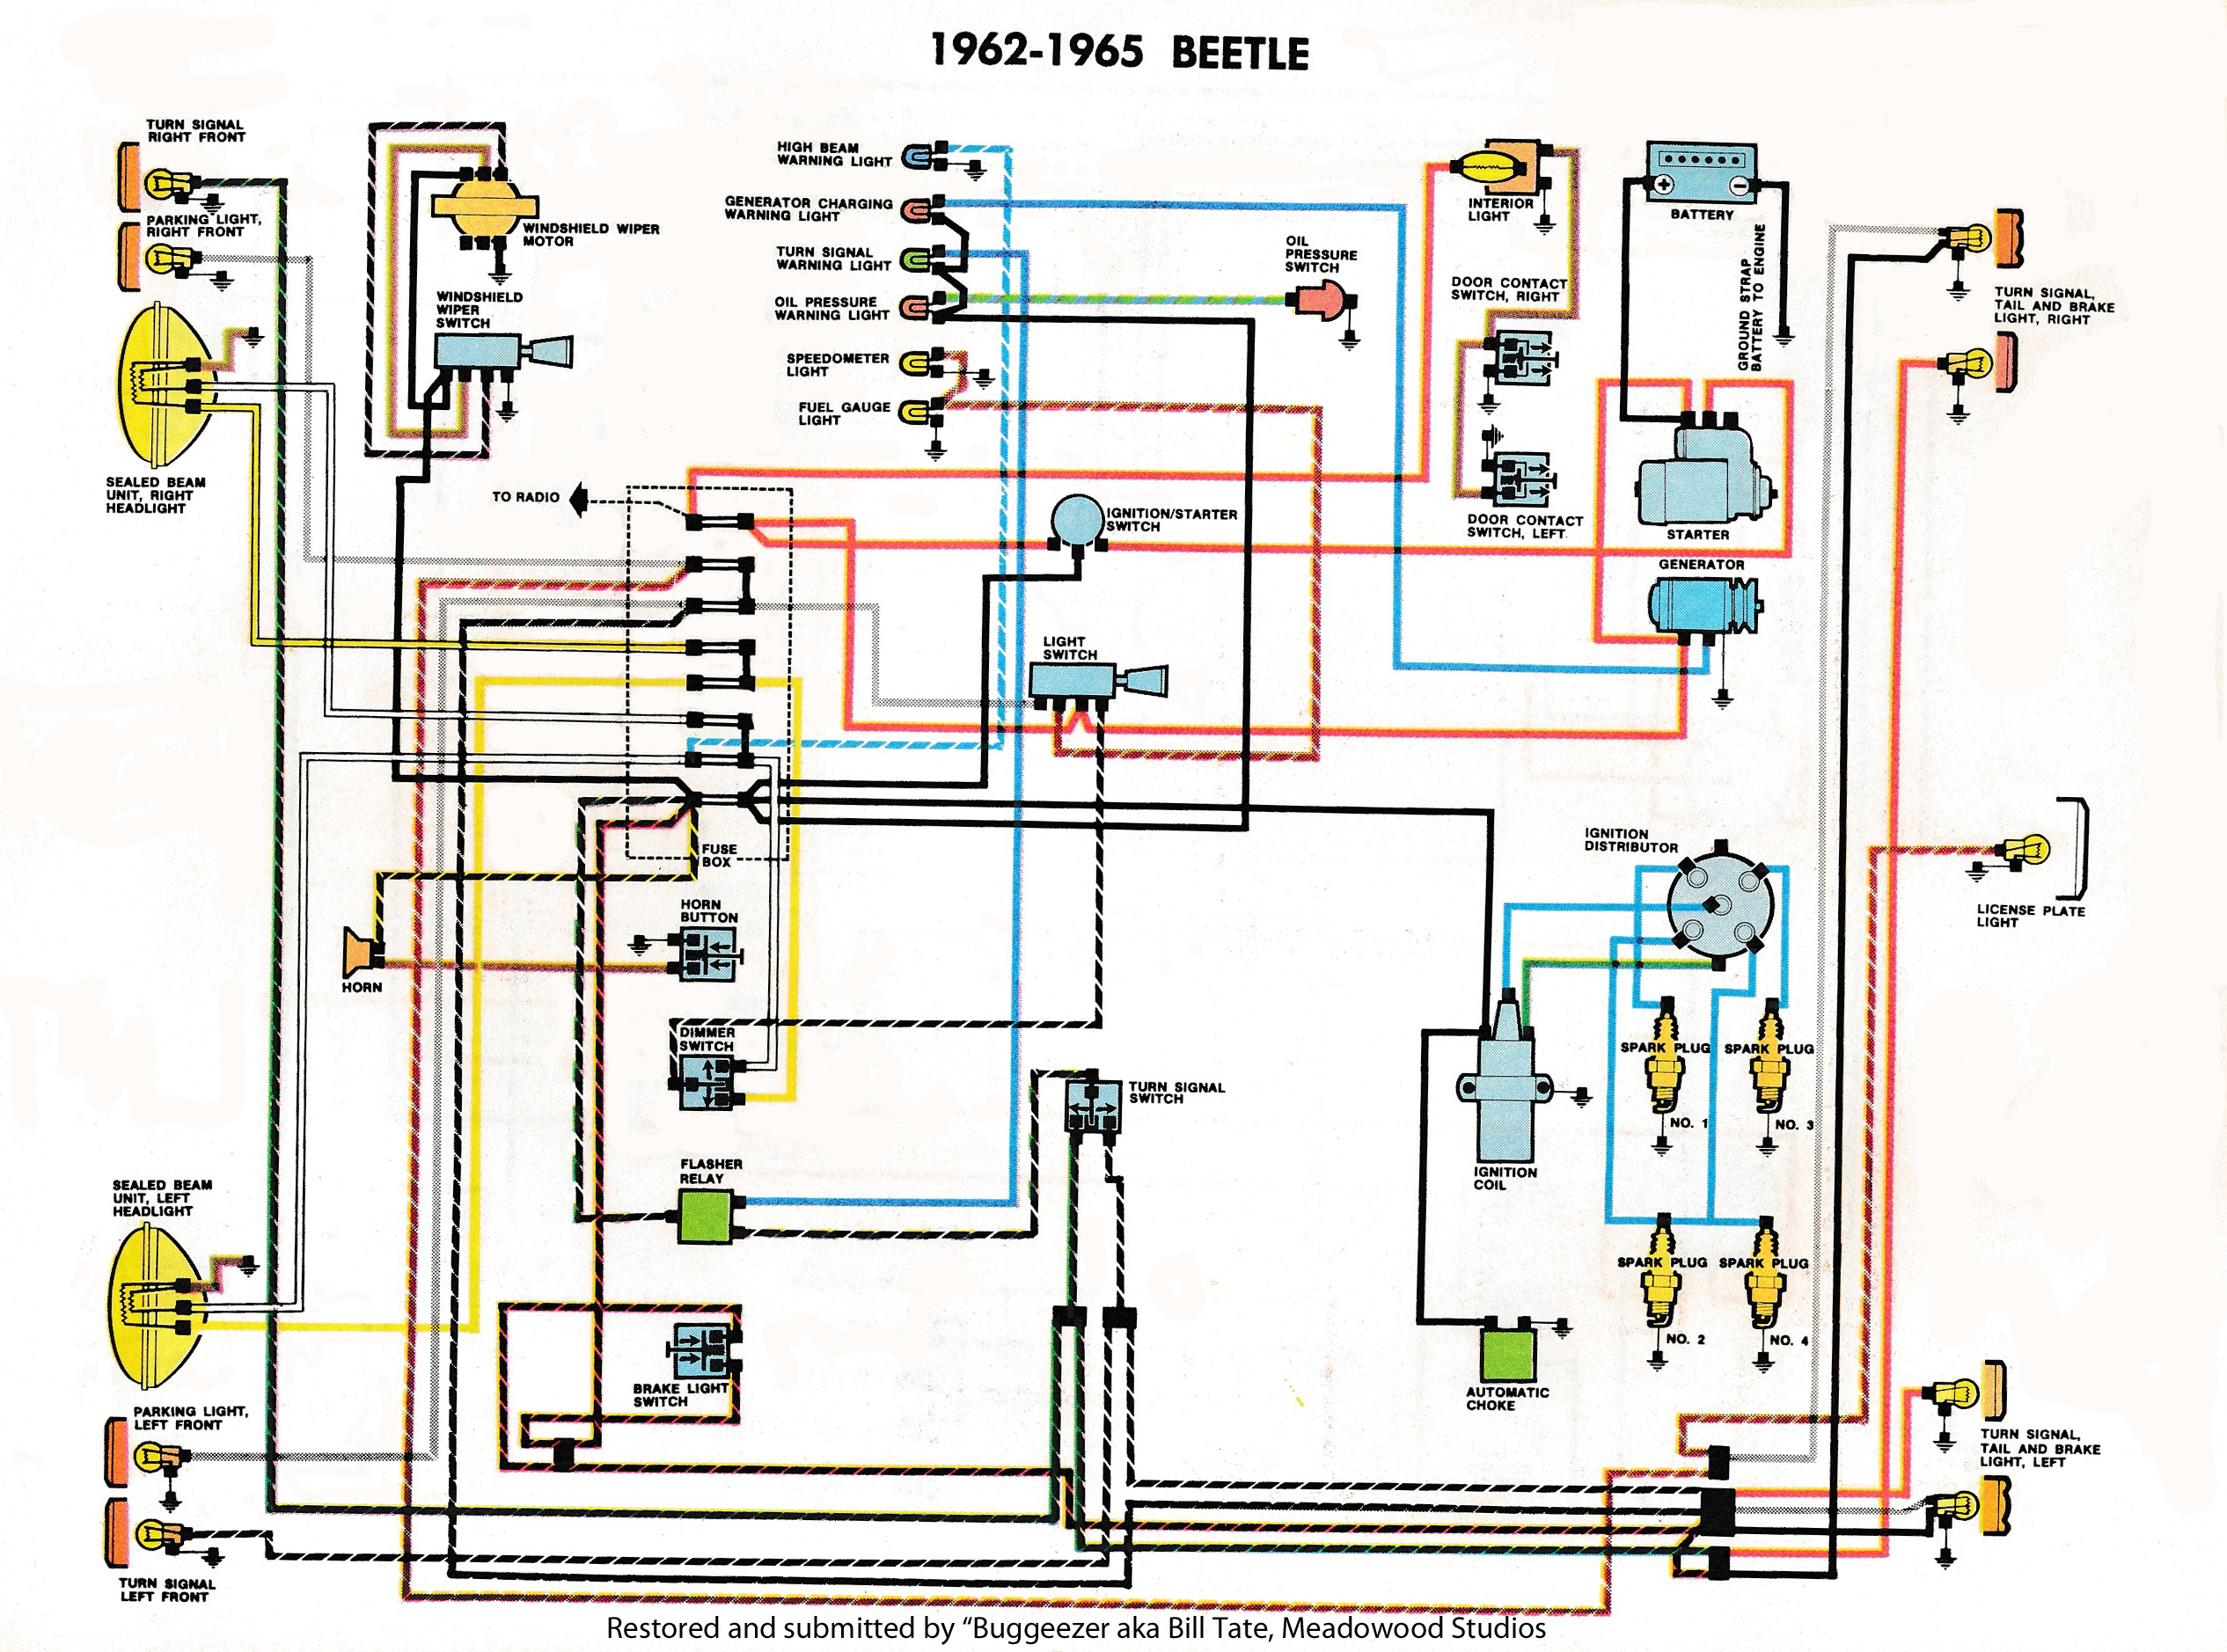 1981 Pontiac Trans Am Wiring Diagram All Kind Of Diagrams Ignition 1978 Camaro Electrical House Thesamba Com Type 1 1982